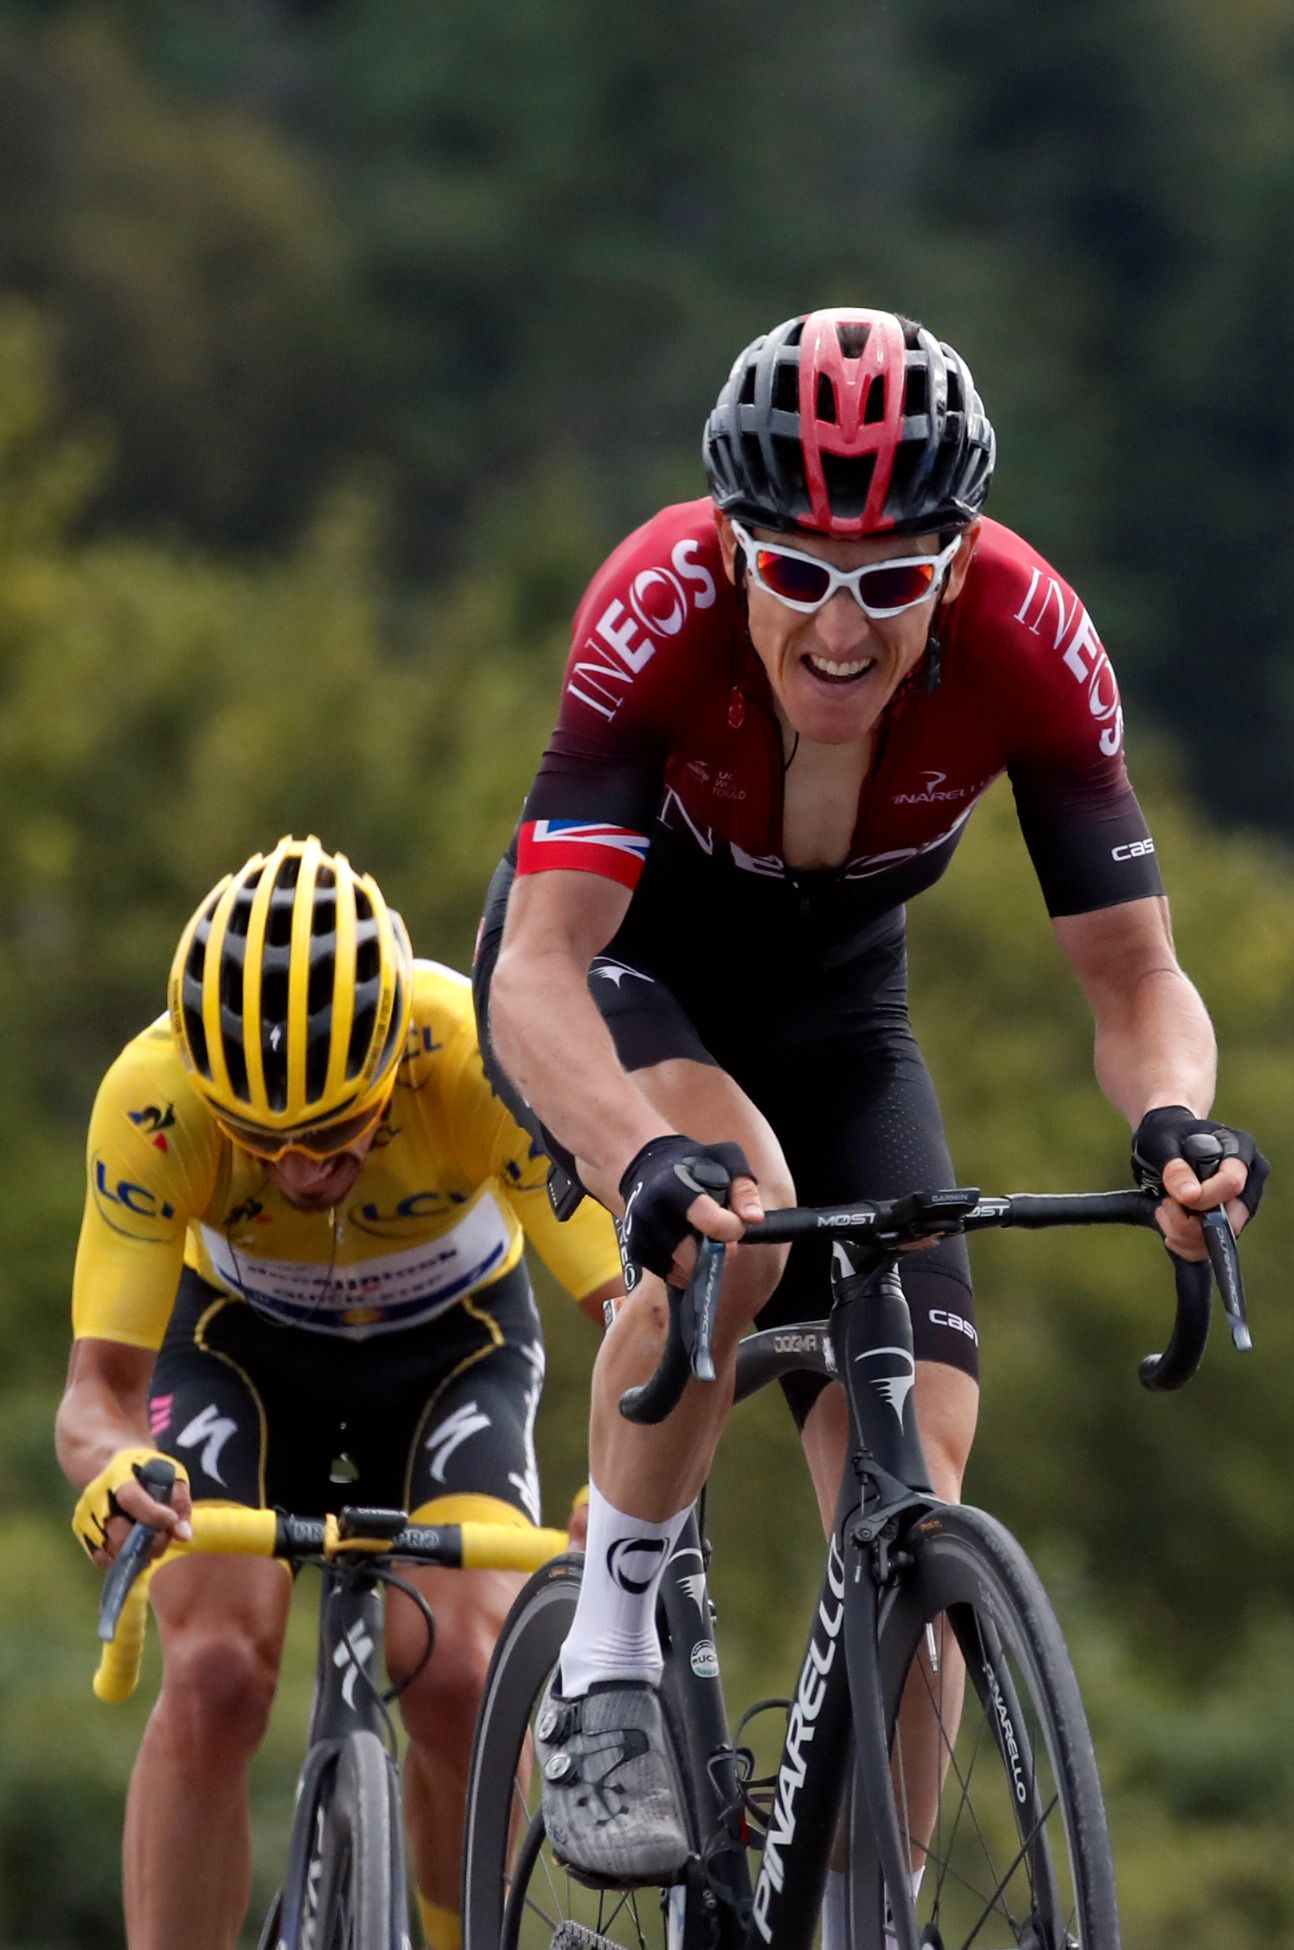 Det ble en god dag for regjerende Tour de France-mester Geraint Thomas.